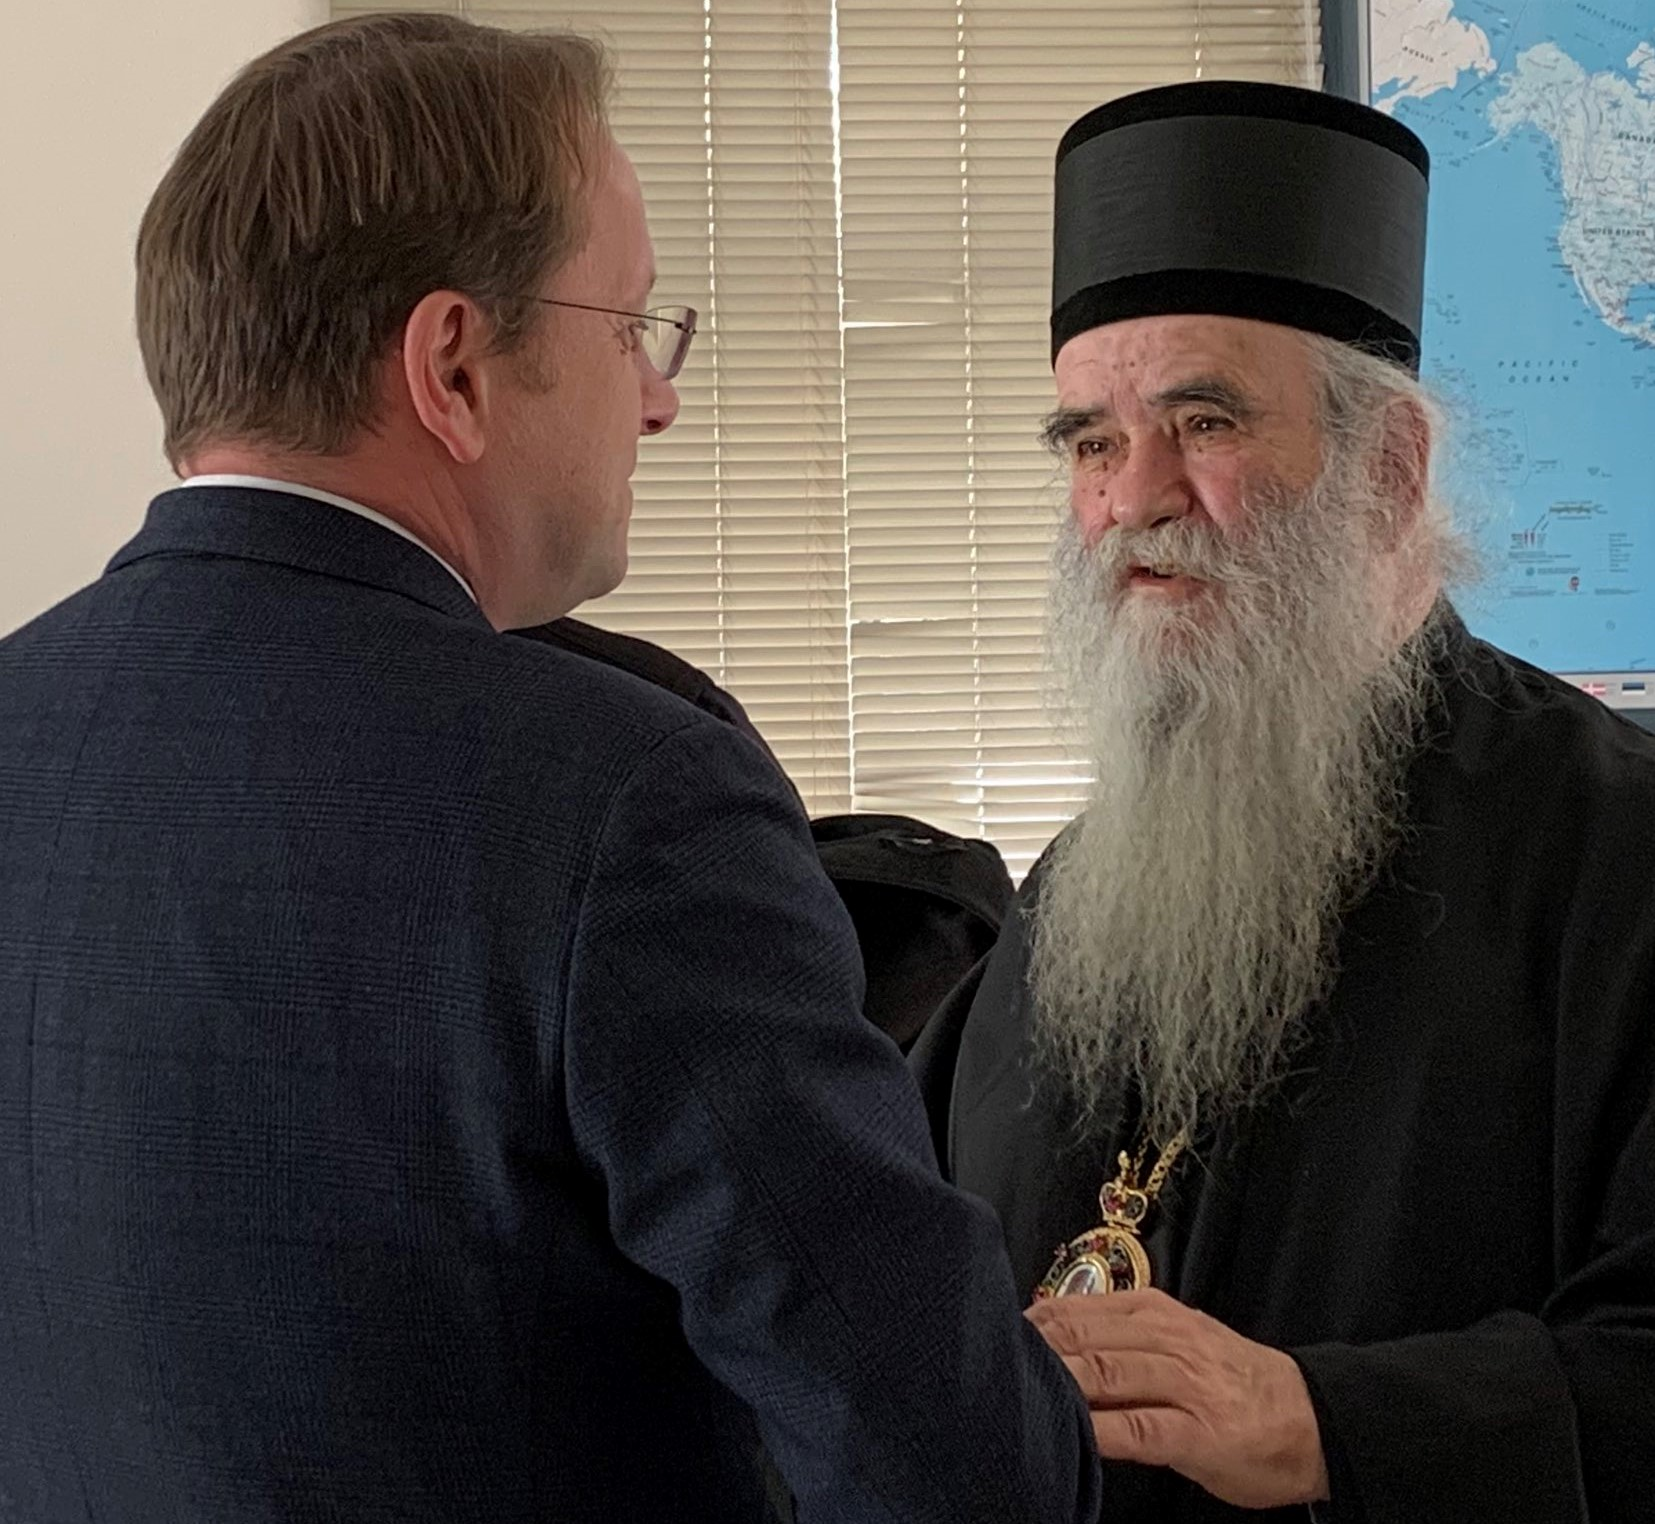 Commissioner Várhelyi Offers Condolences to Montenegrins after Death of Controversial Bishop